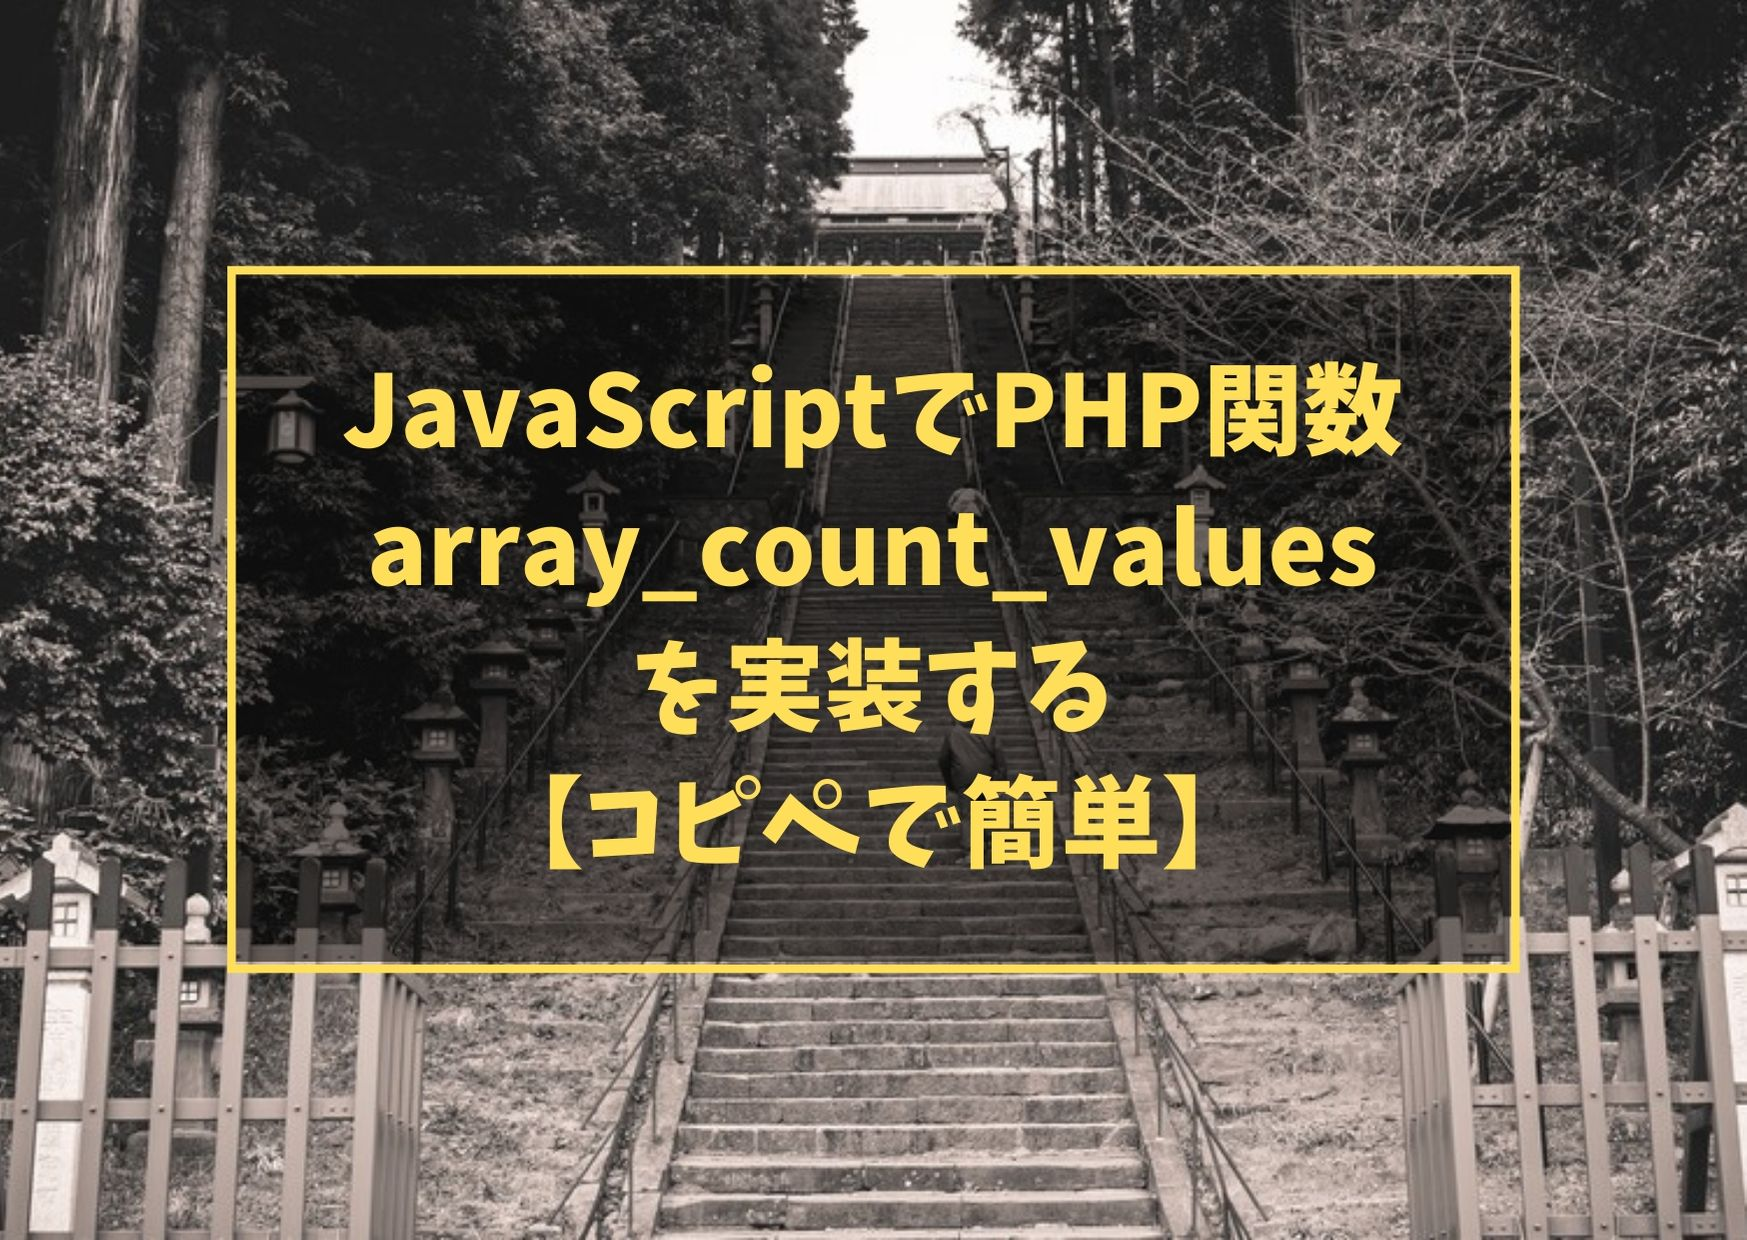 JavaScriptでPHP関数 array_count_valuesを実装する【コピペで簡単】